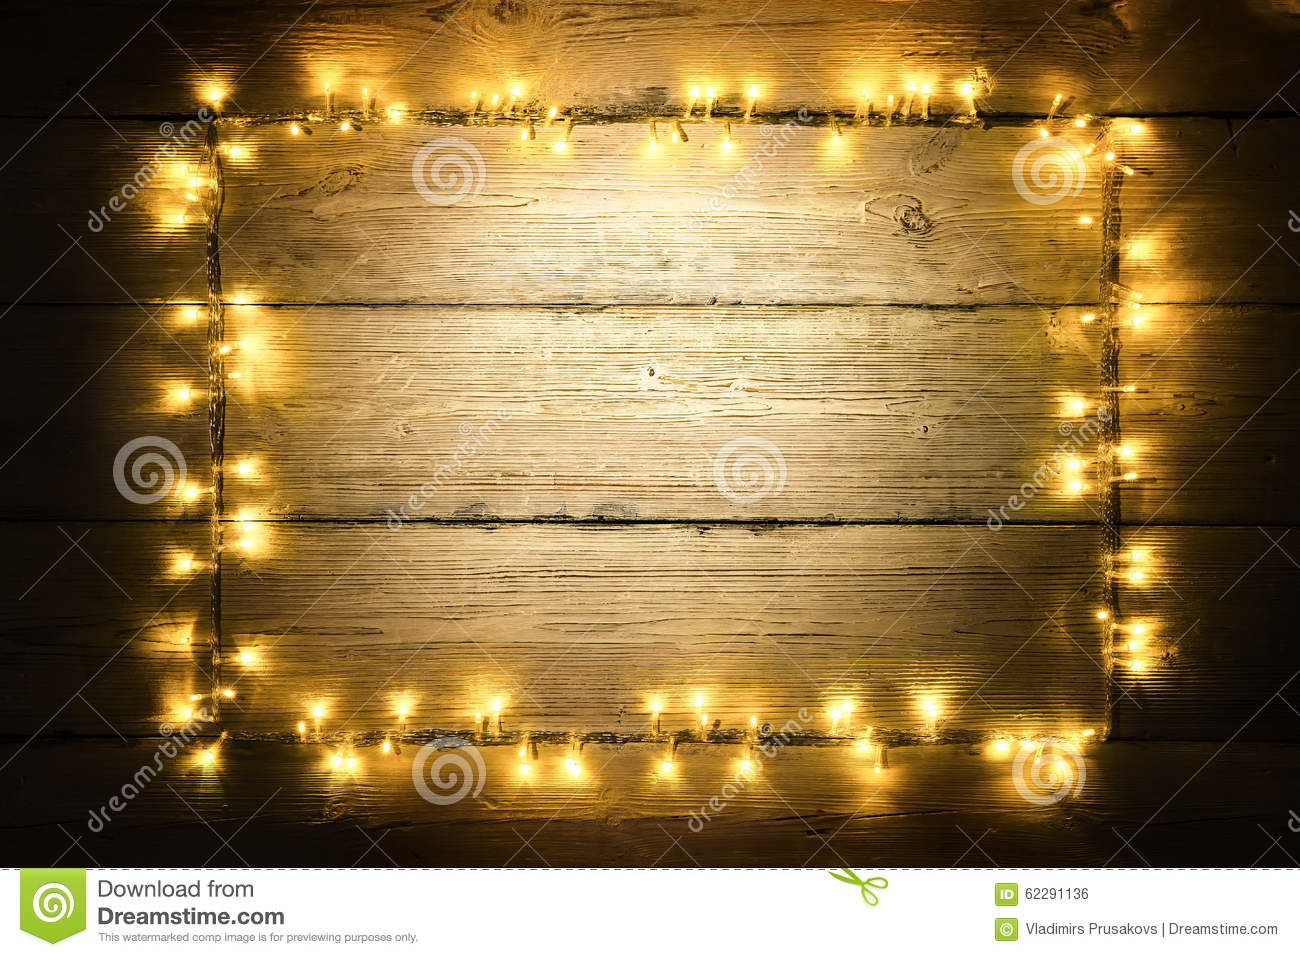 garland lights wood frame lighting wooden planks sign board